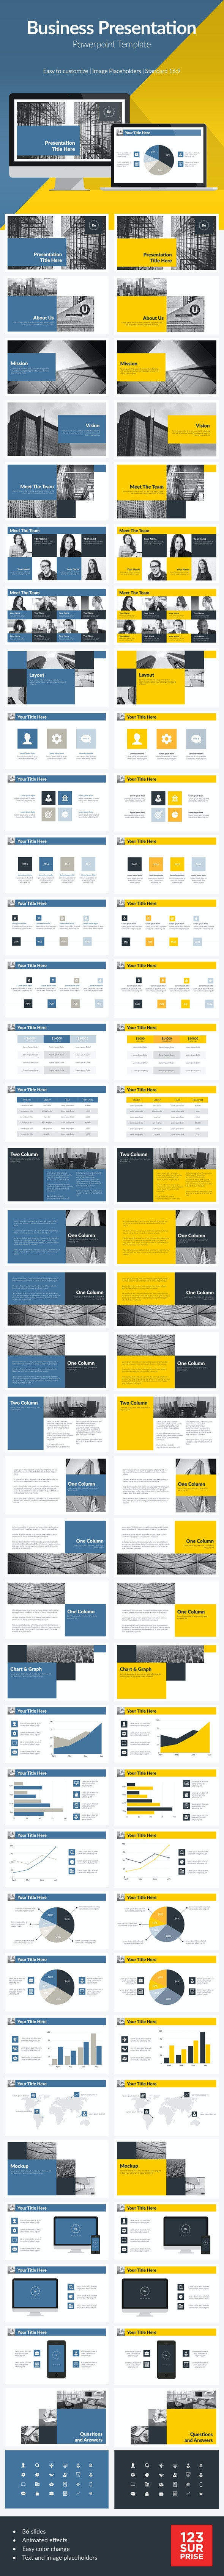 Corporate Business Powerpoint Template - Business PowerPoint Templates